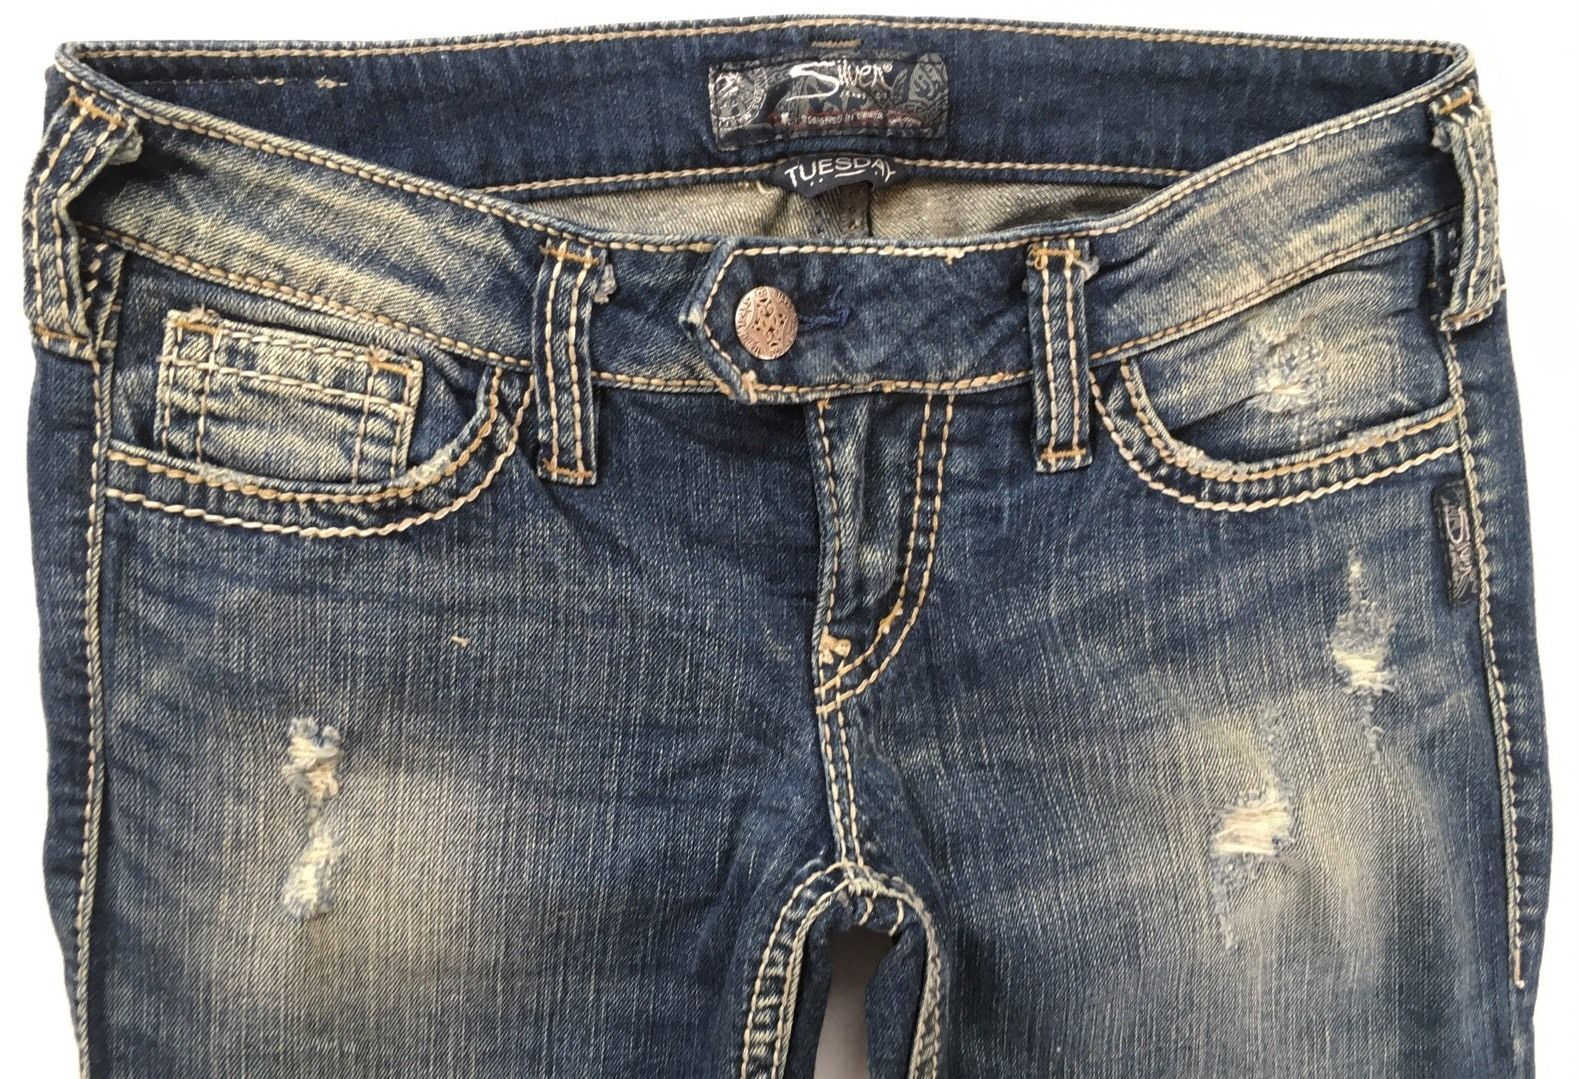 SILVER Jeans Sale Low Rise Tuesday Destructed Denim Stretch Jean Mid Shorts 30